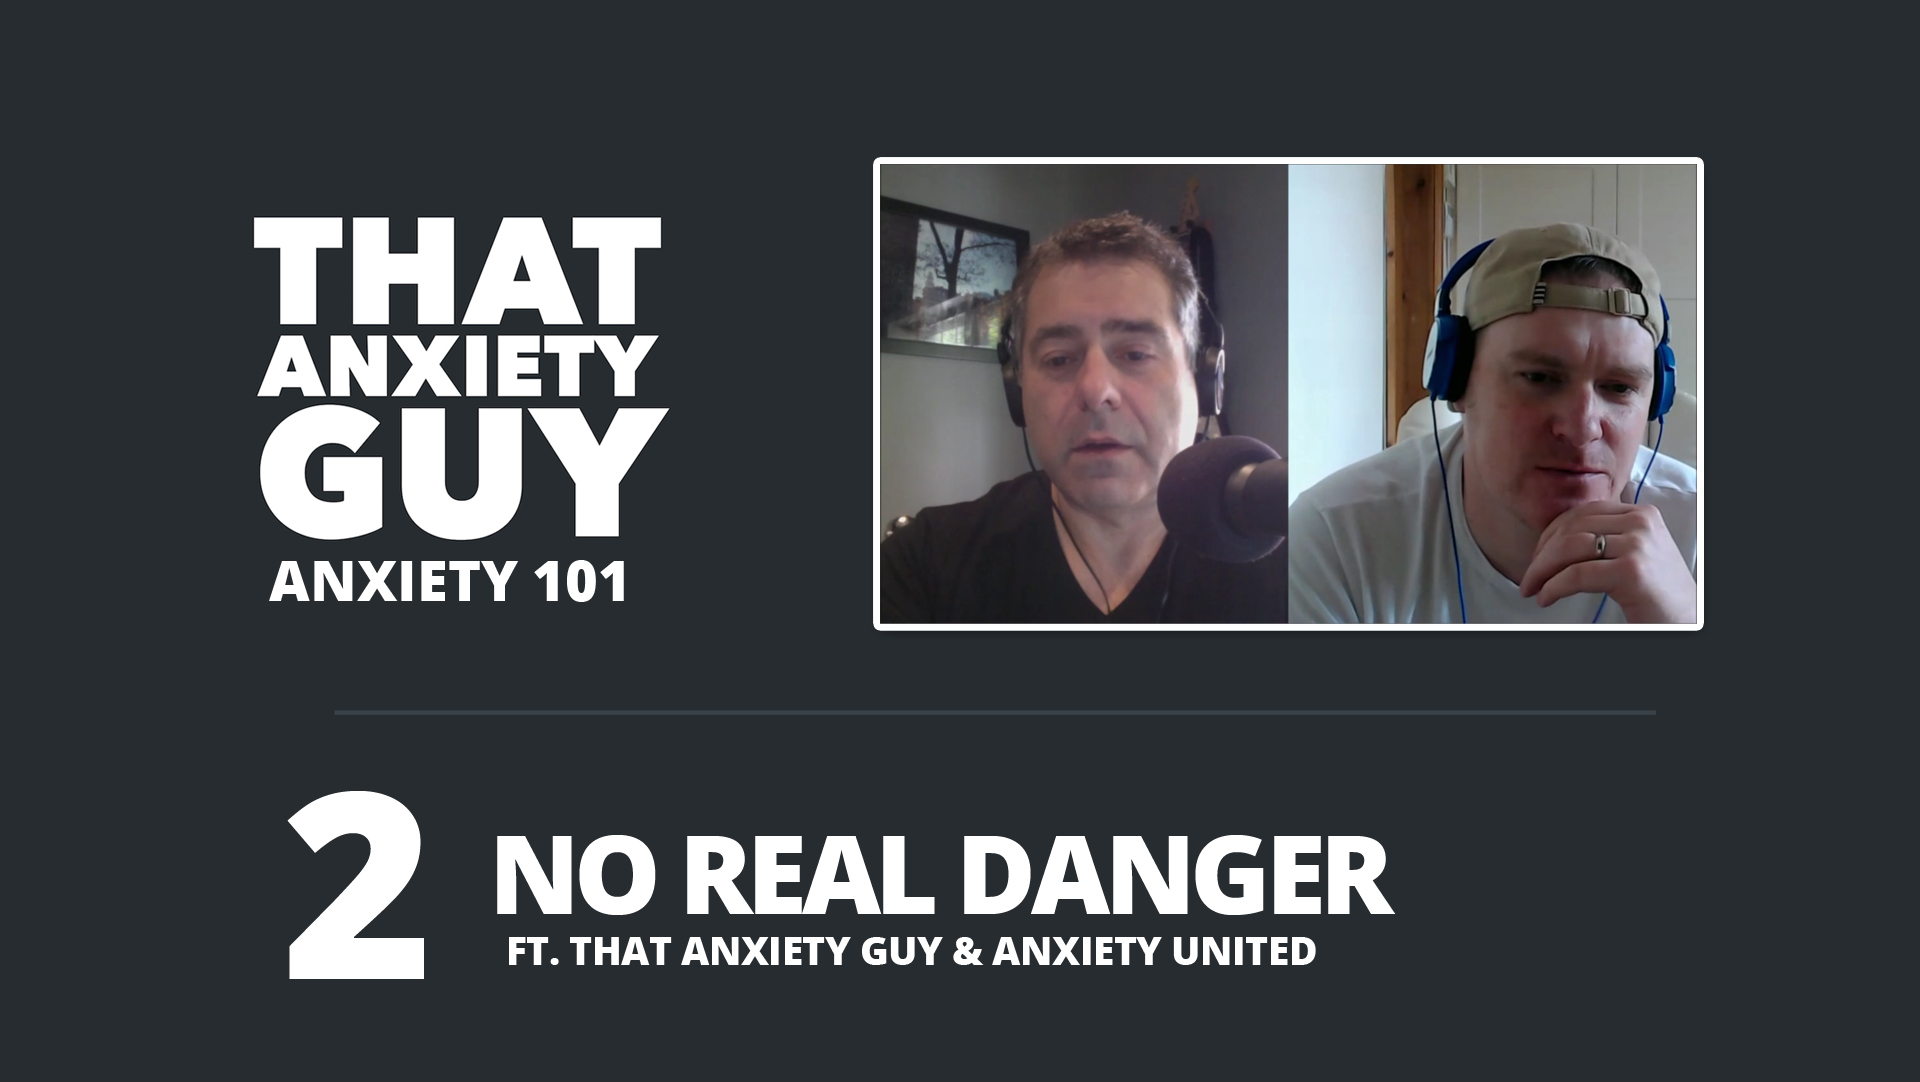 Anxiety 101 - Episode Two